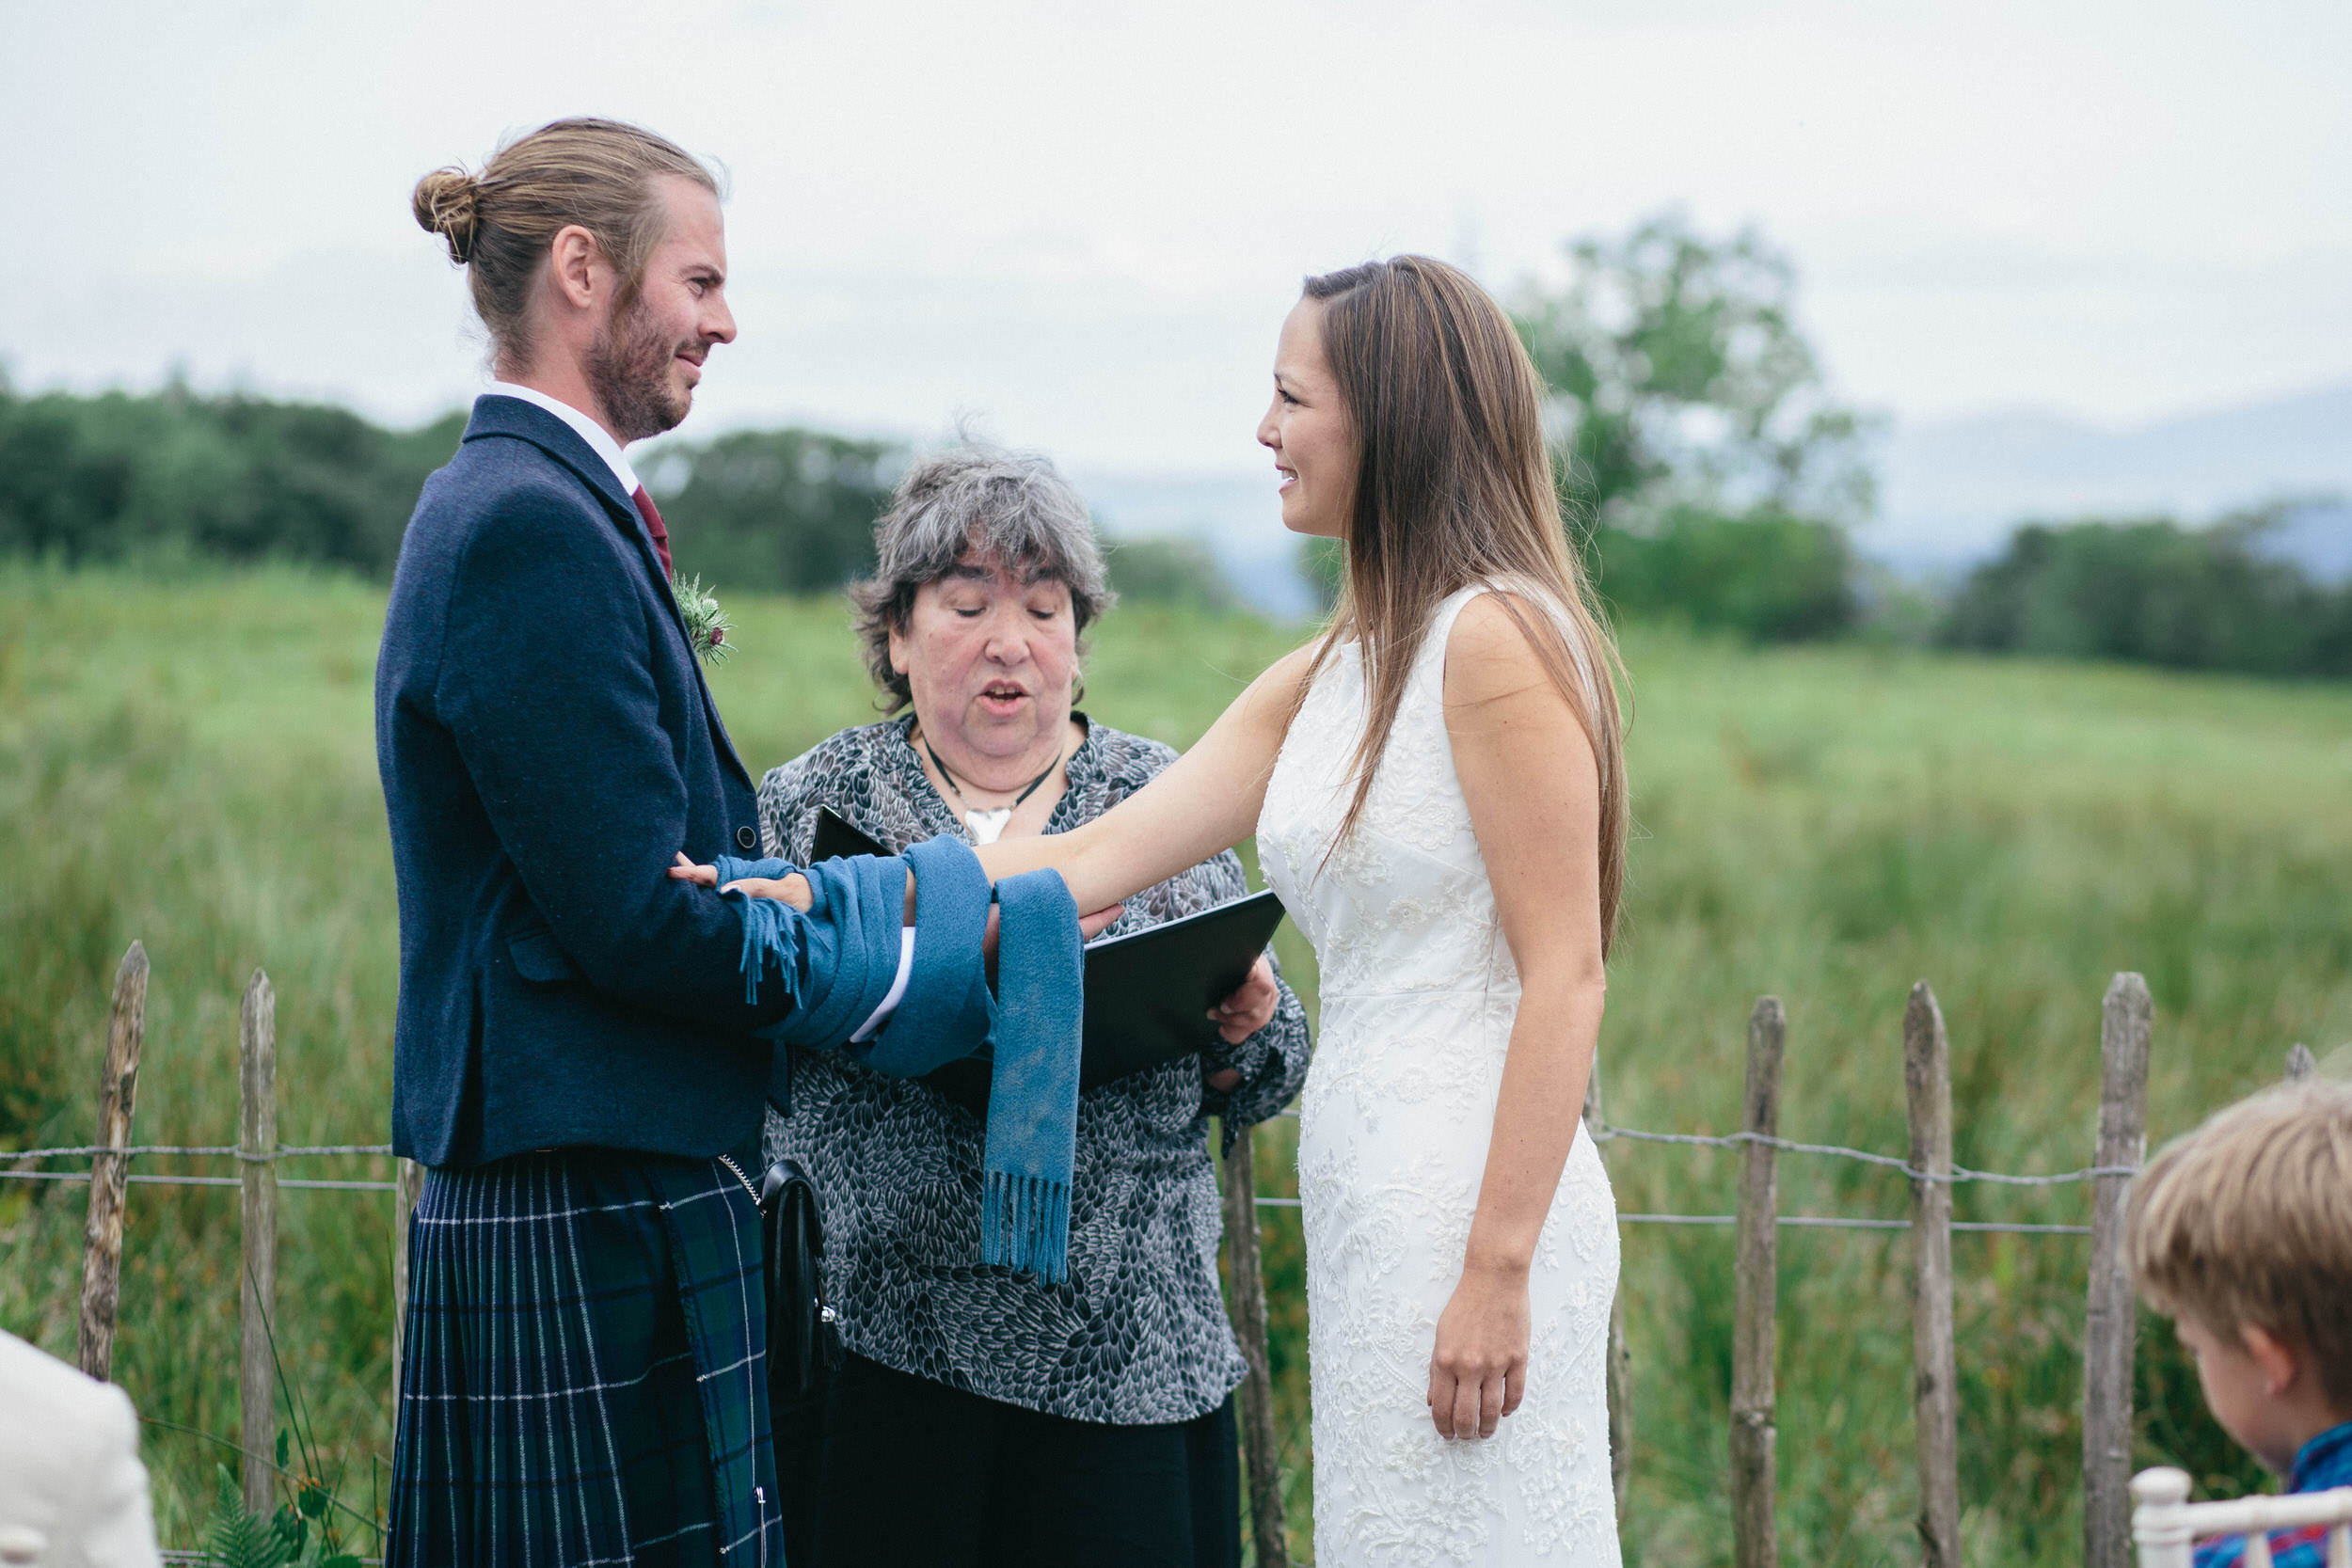 Alternative Quirky Wedding Photographer Scotland Borders Edinburgh 038.jpg